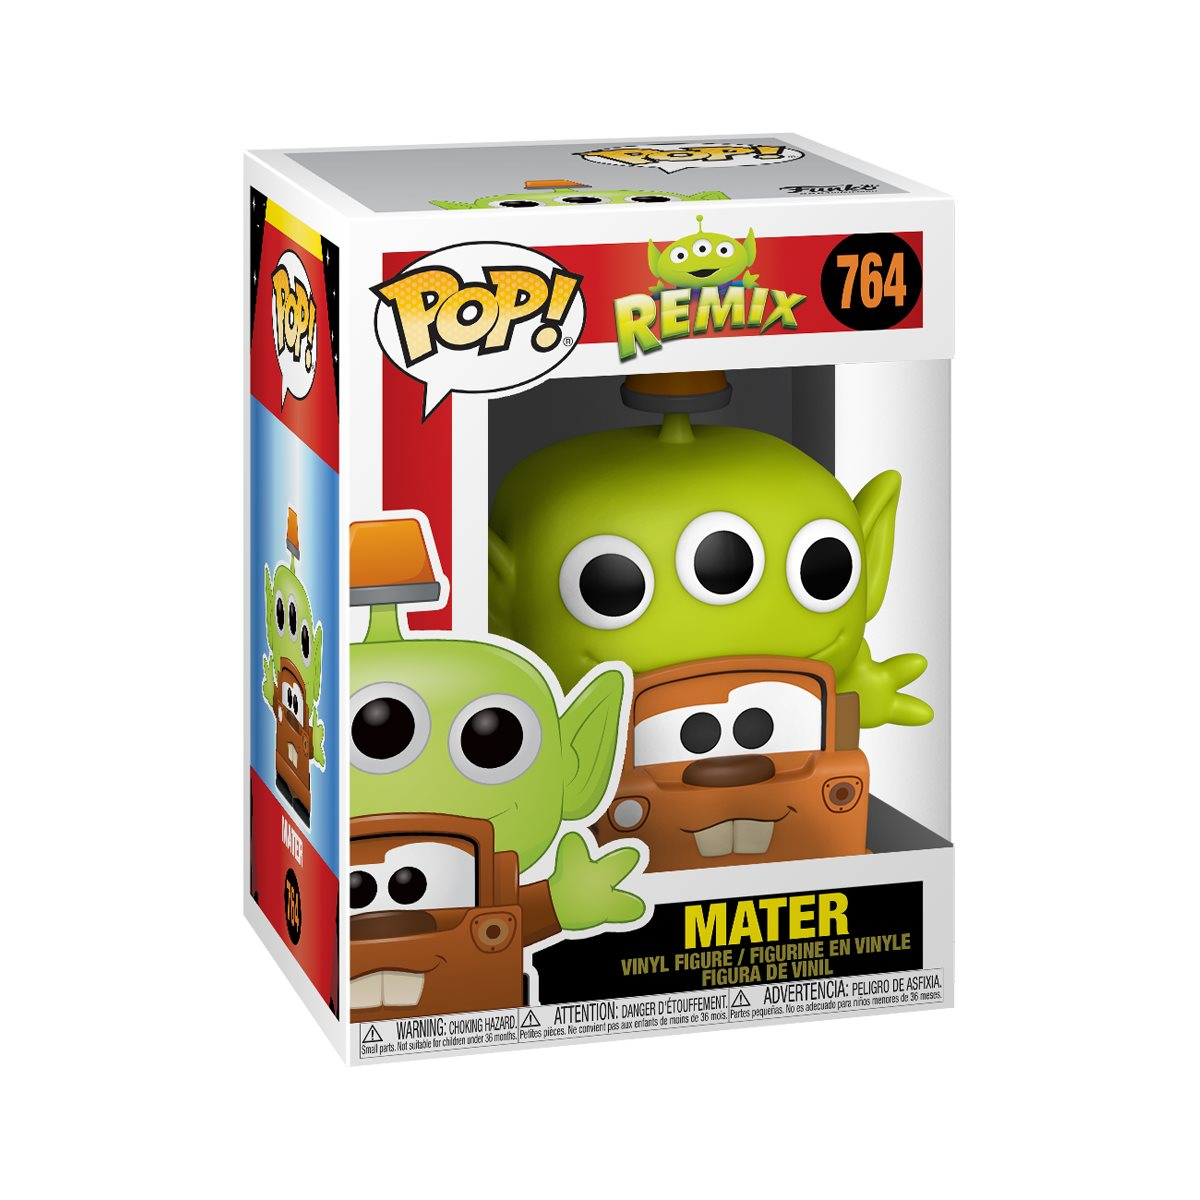 Pixar 25th Anniversary Alien as Mater